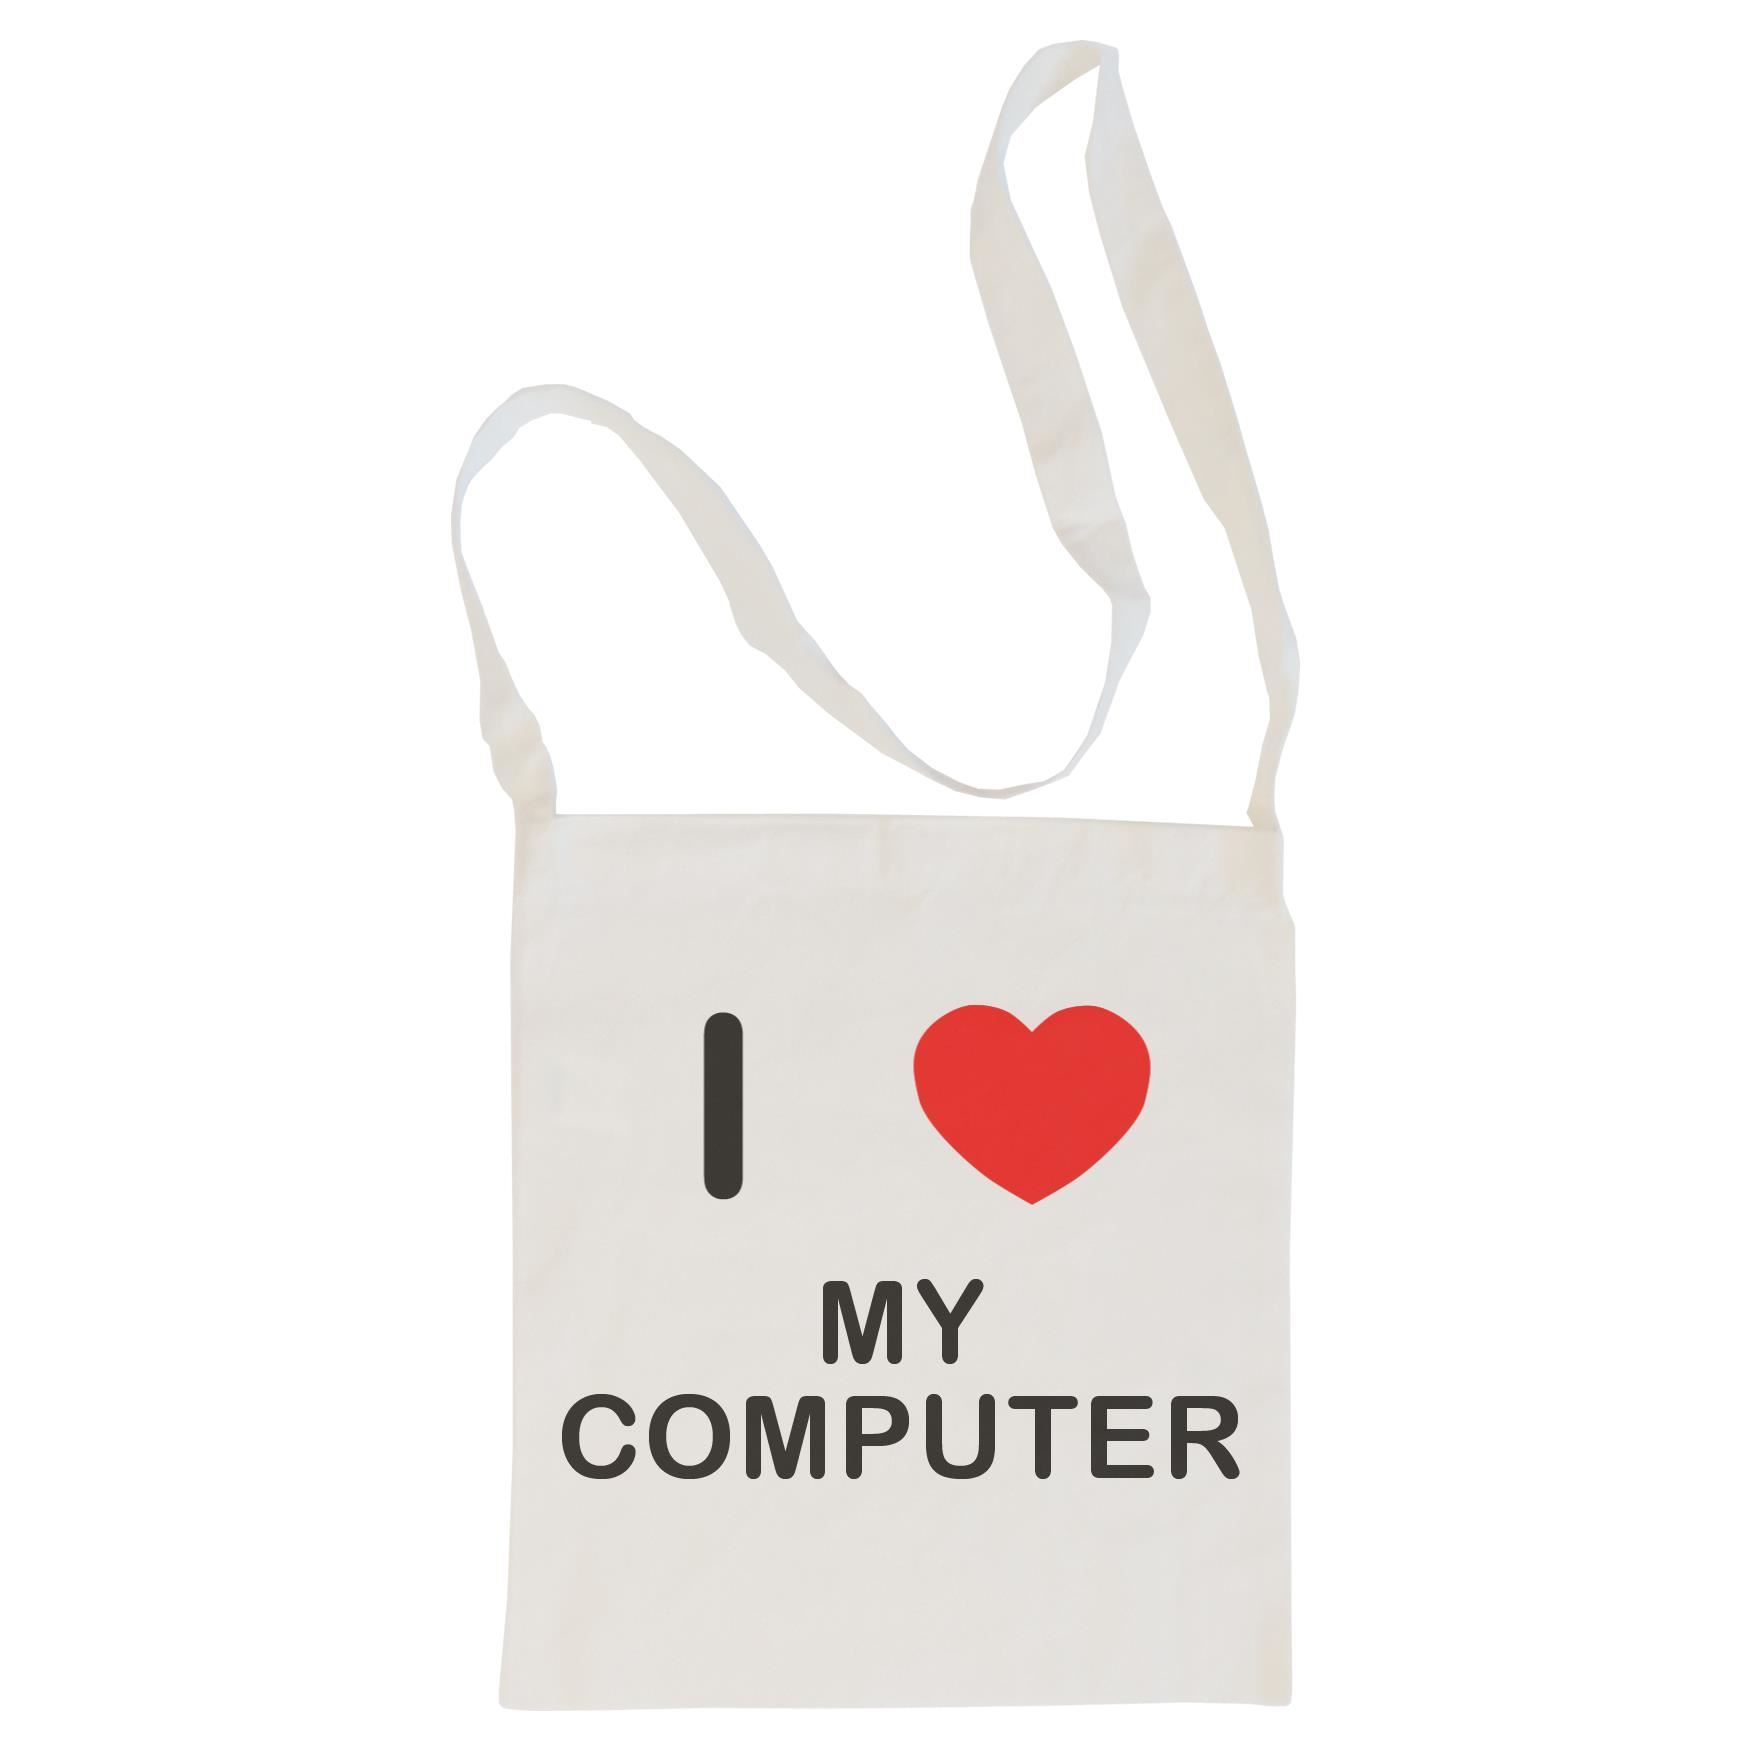 I Love My Computer - Cotton Bag | Size choice Tote, Shopper or Sling